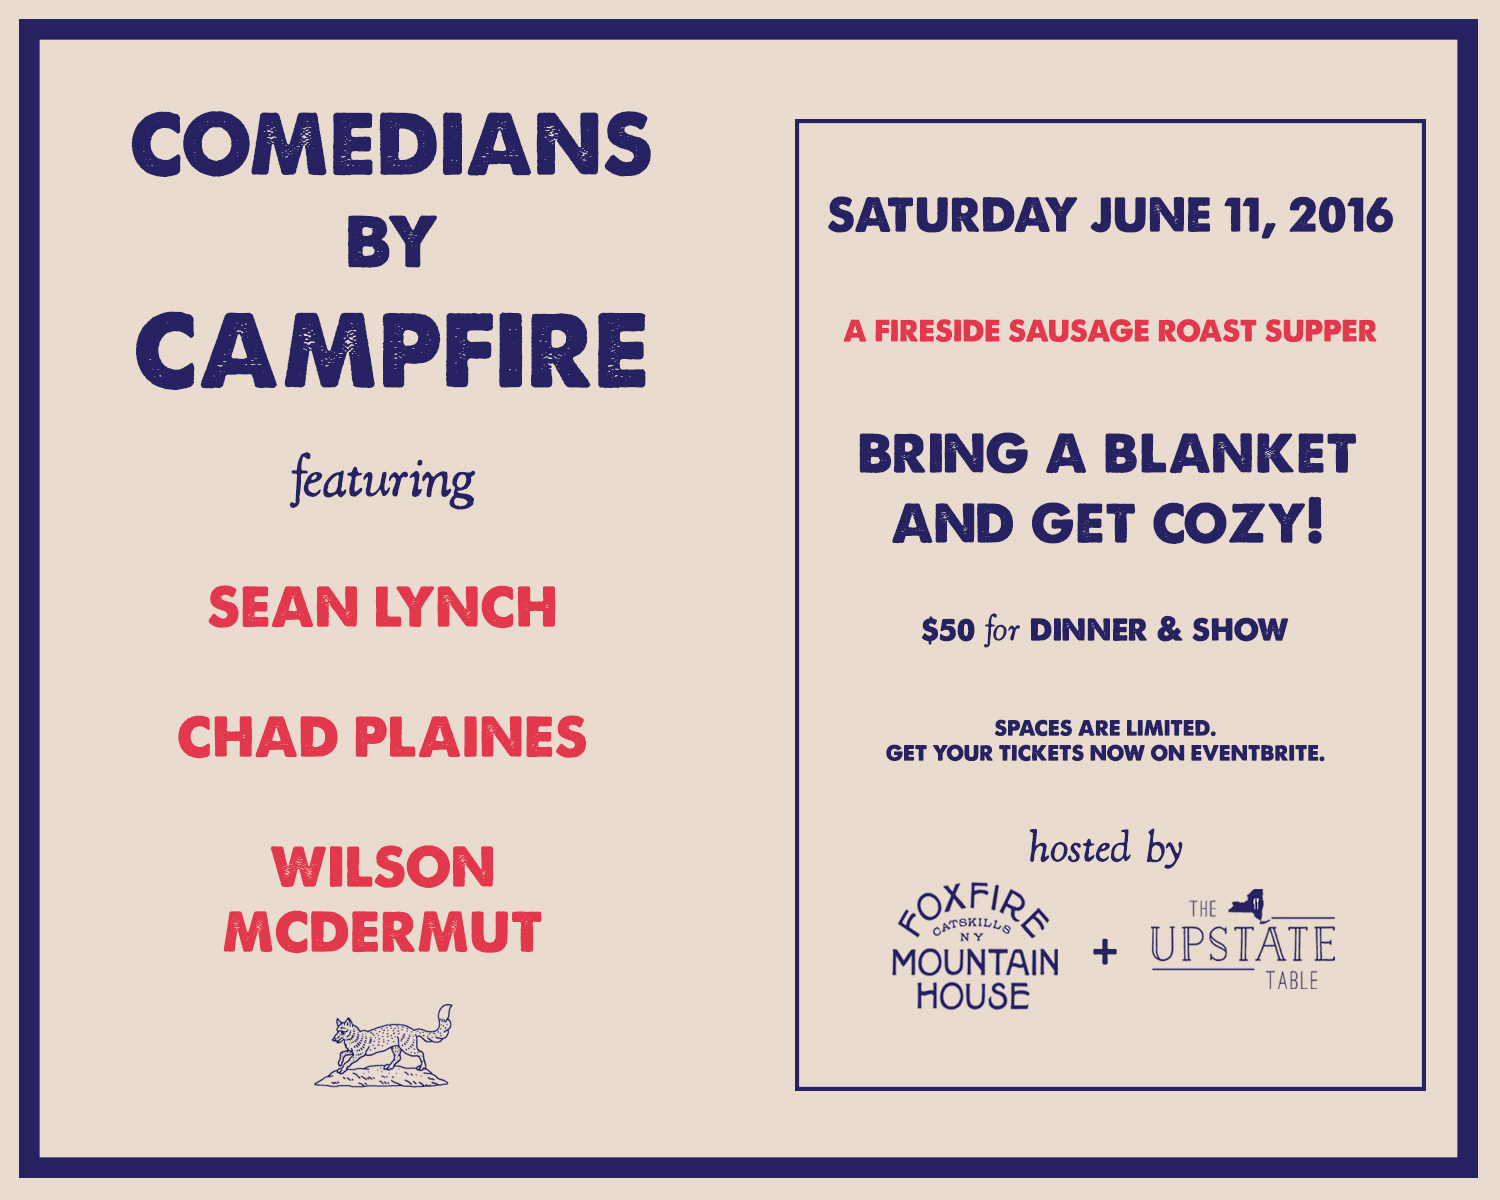 Comedians by Campfire